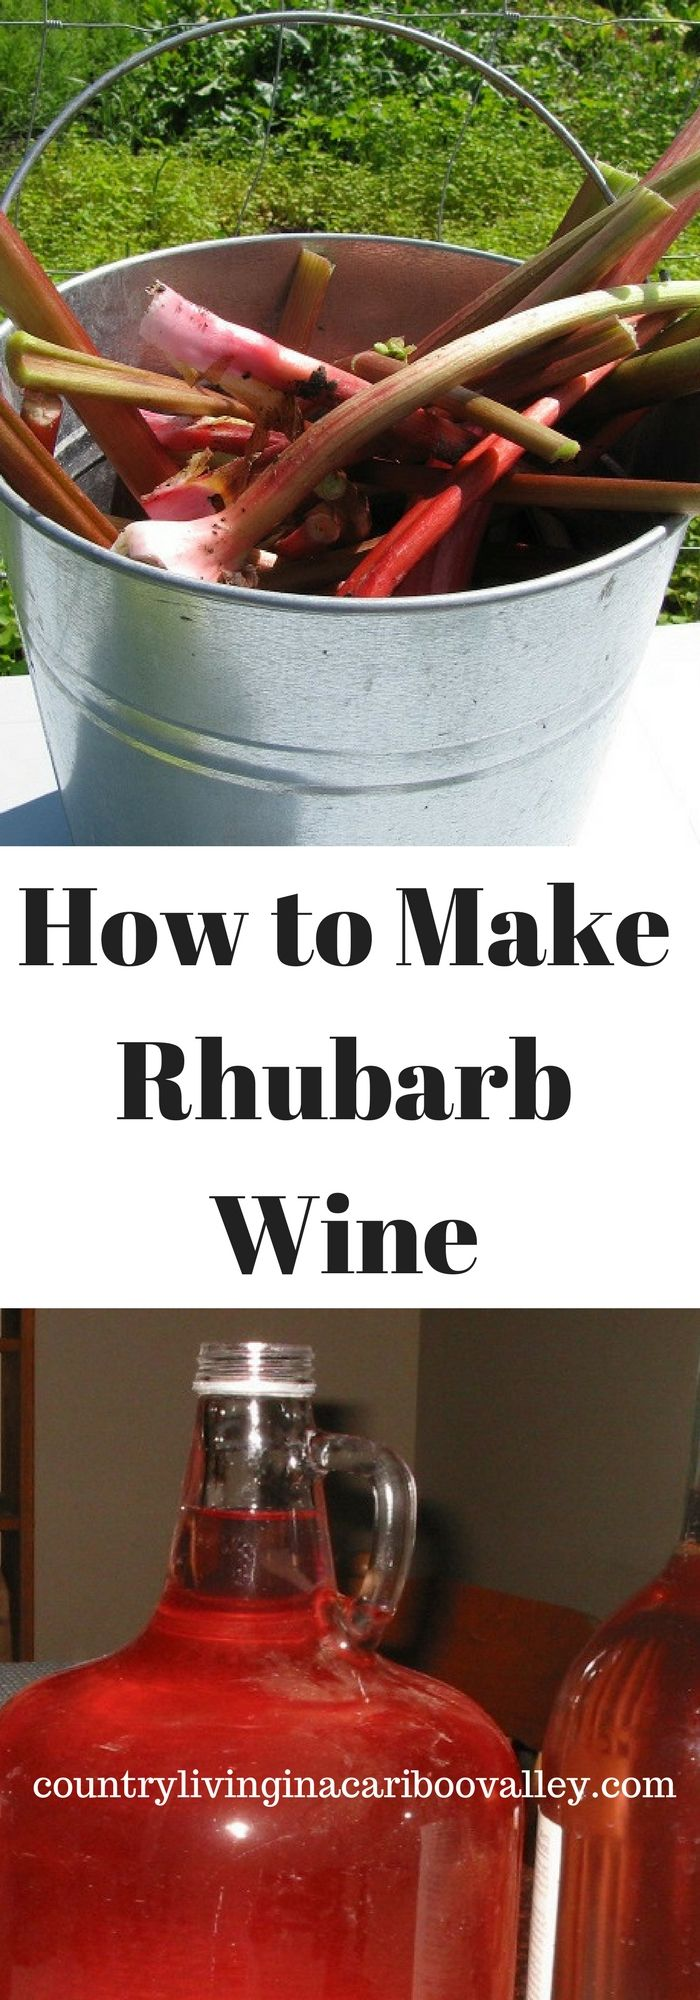 Make your own Rhubarb Wine. Light Come and see our new website at bakedcomfortfood.com!